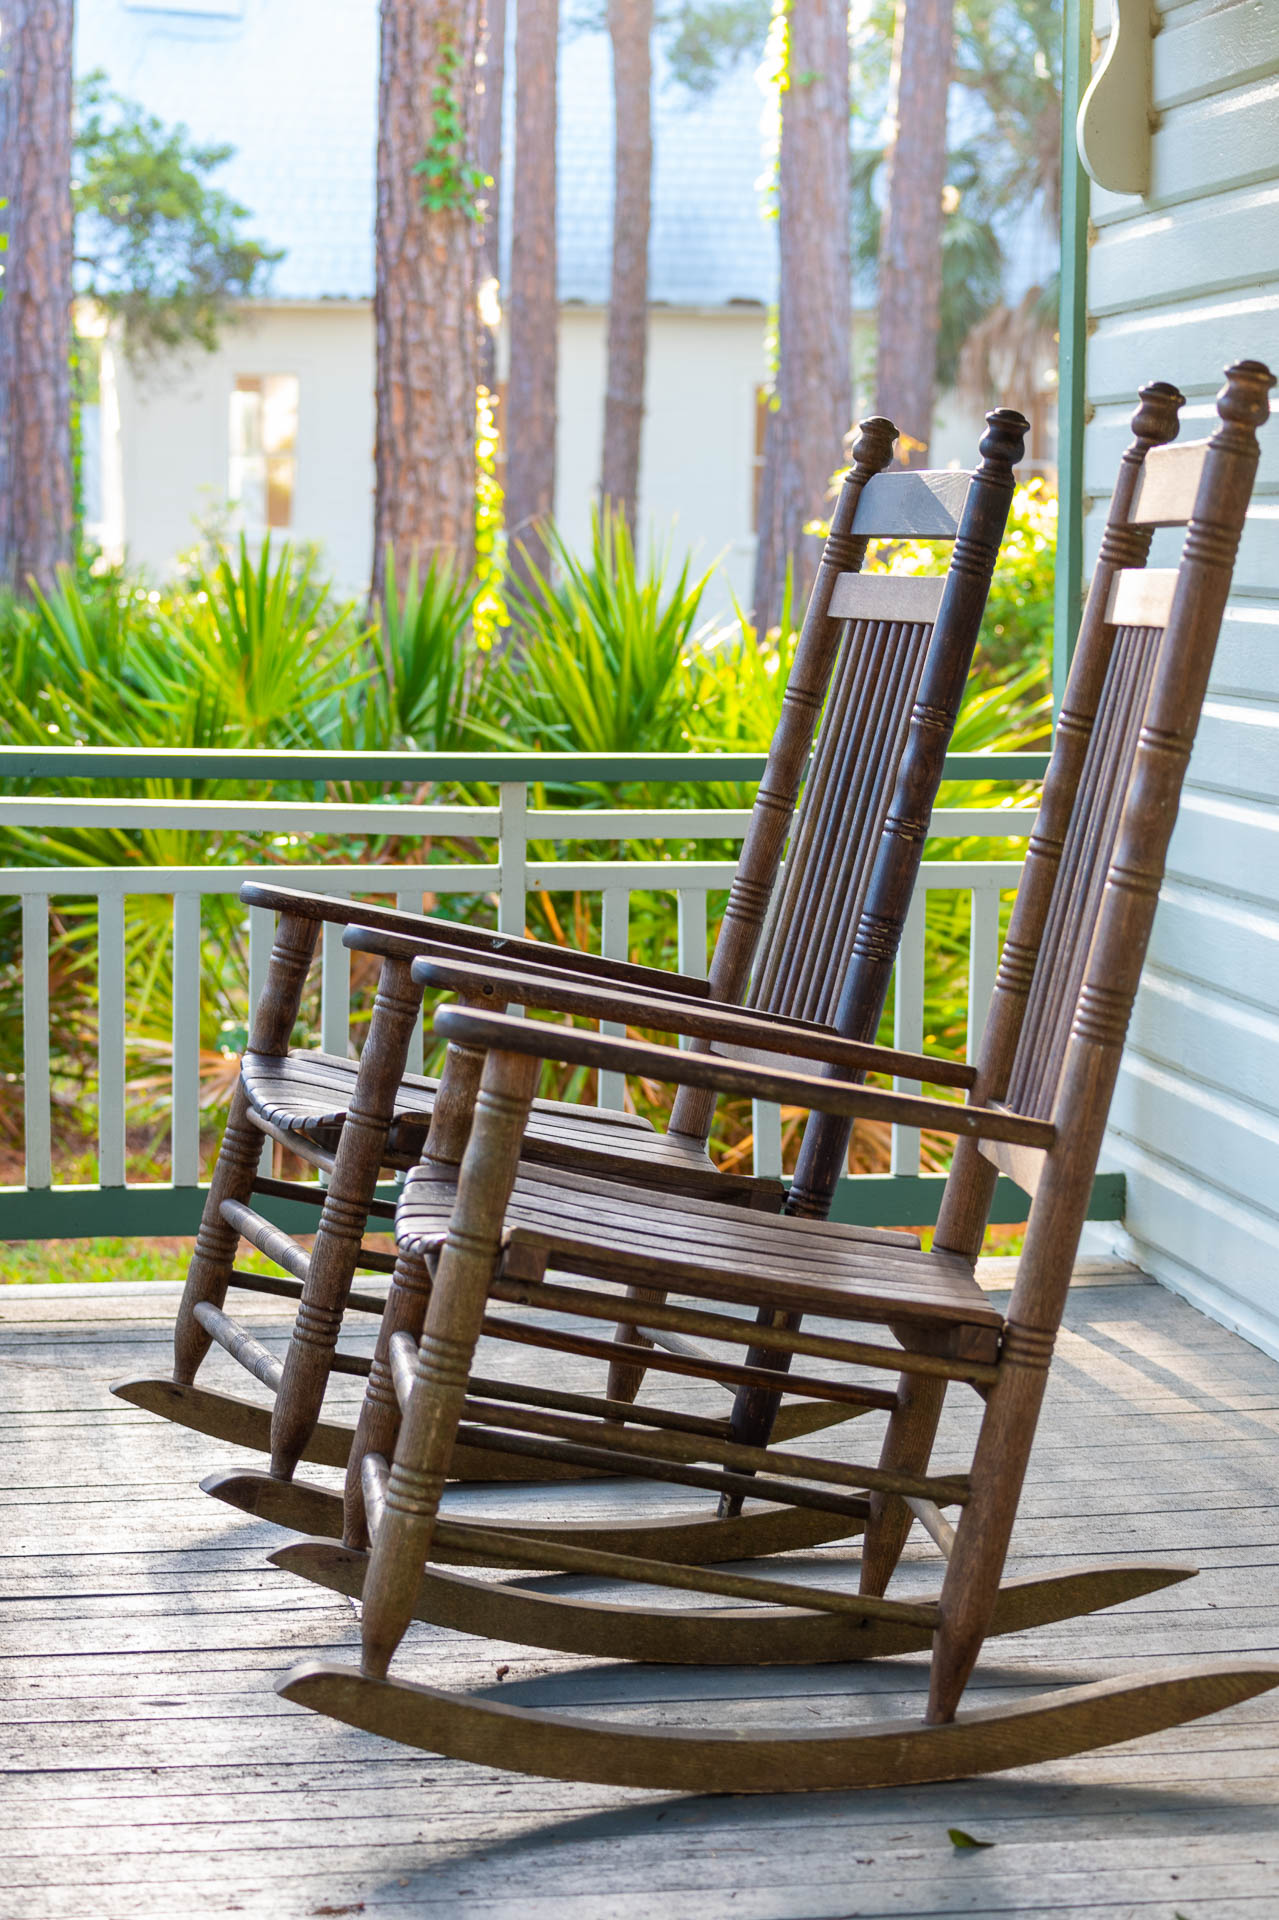 Rocking chairs on the front porch.